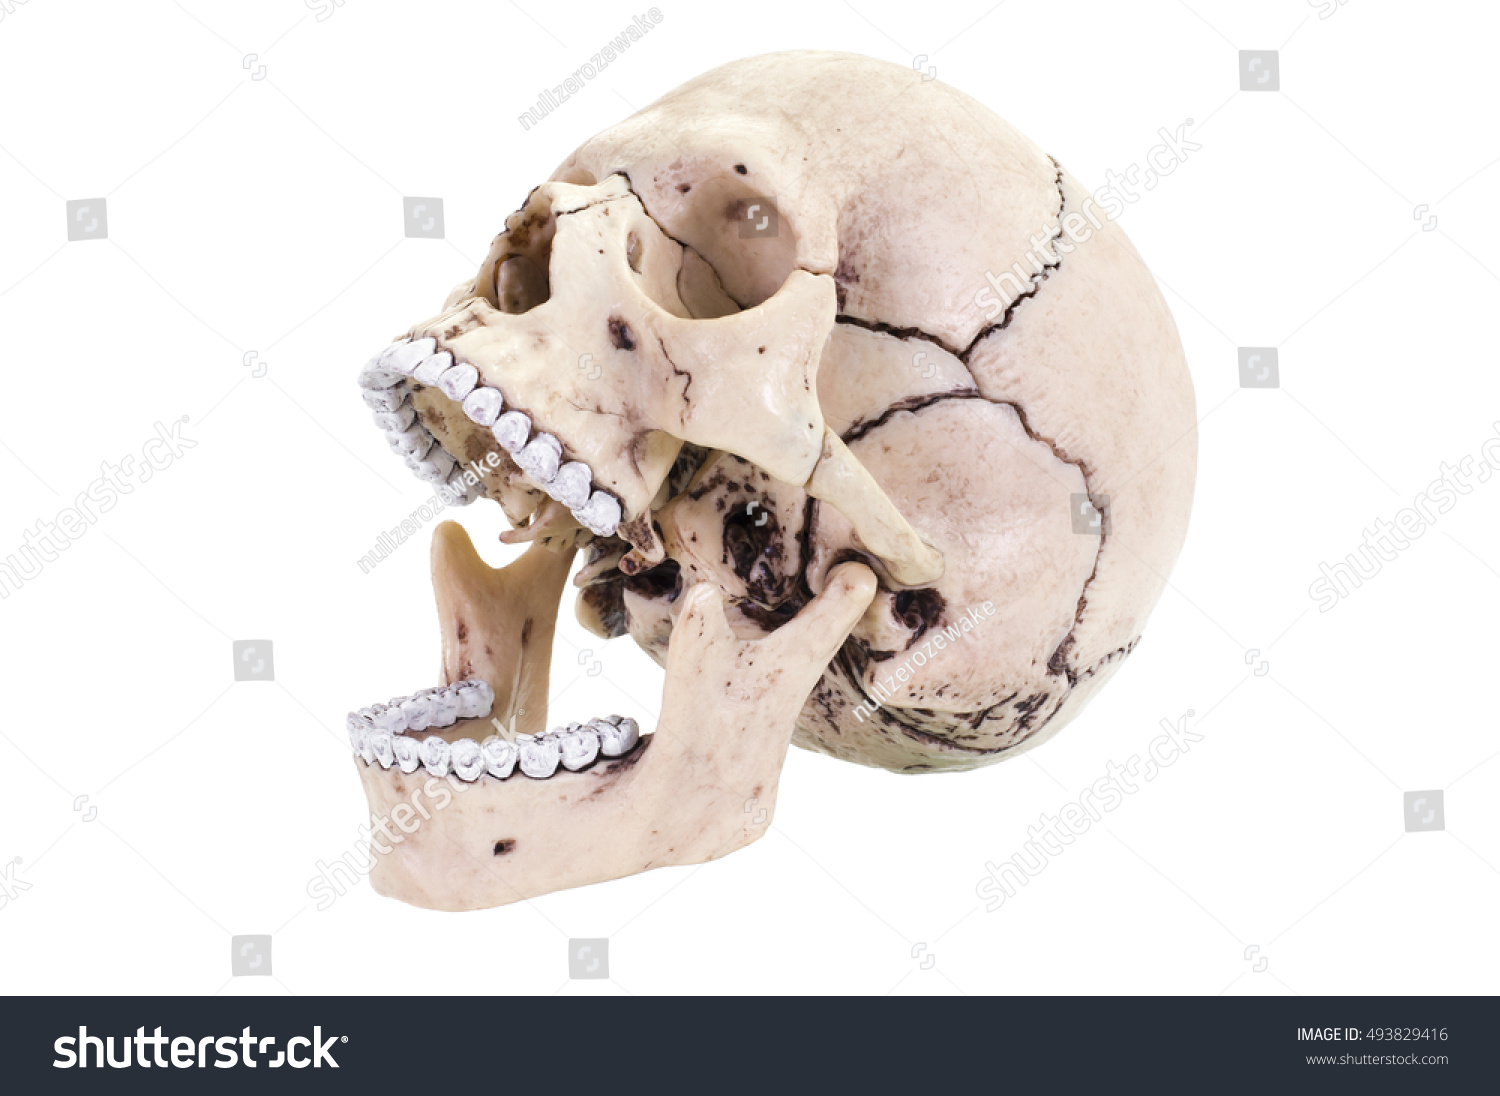 Royalty Free Human Skull Open Mouth Front Left 493829416 Stock